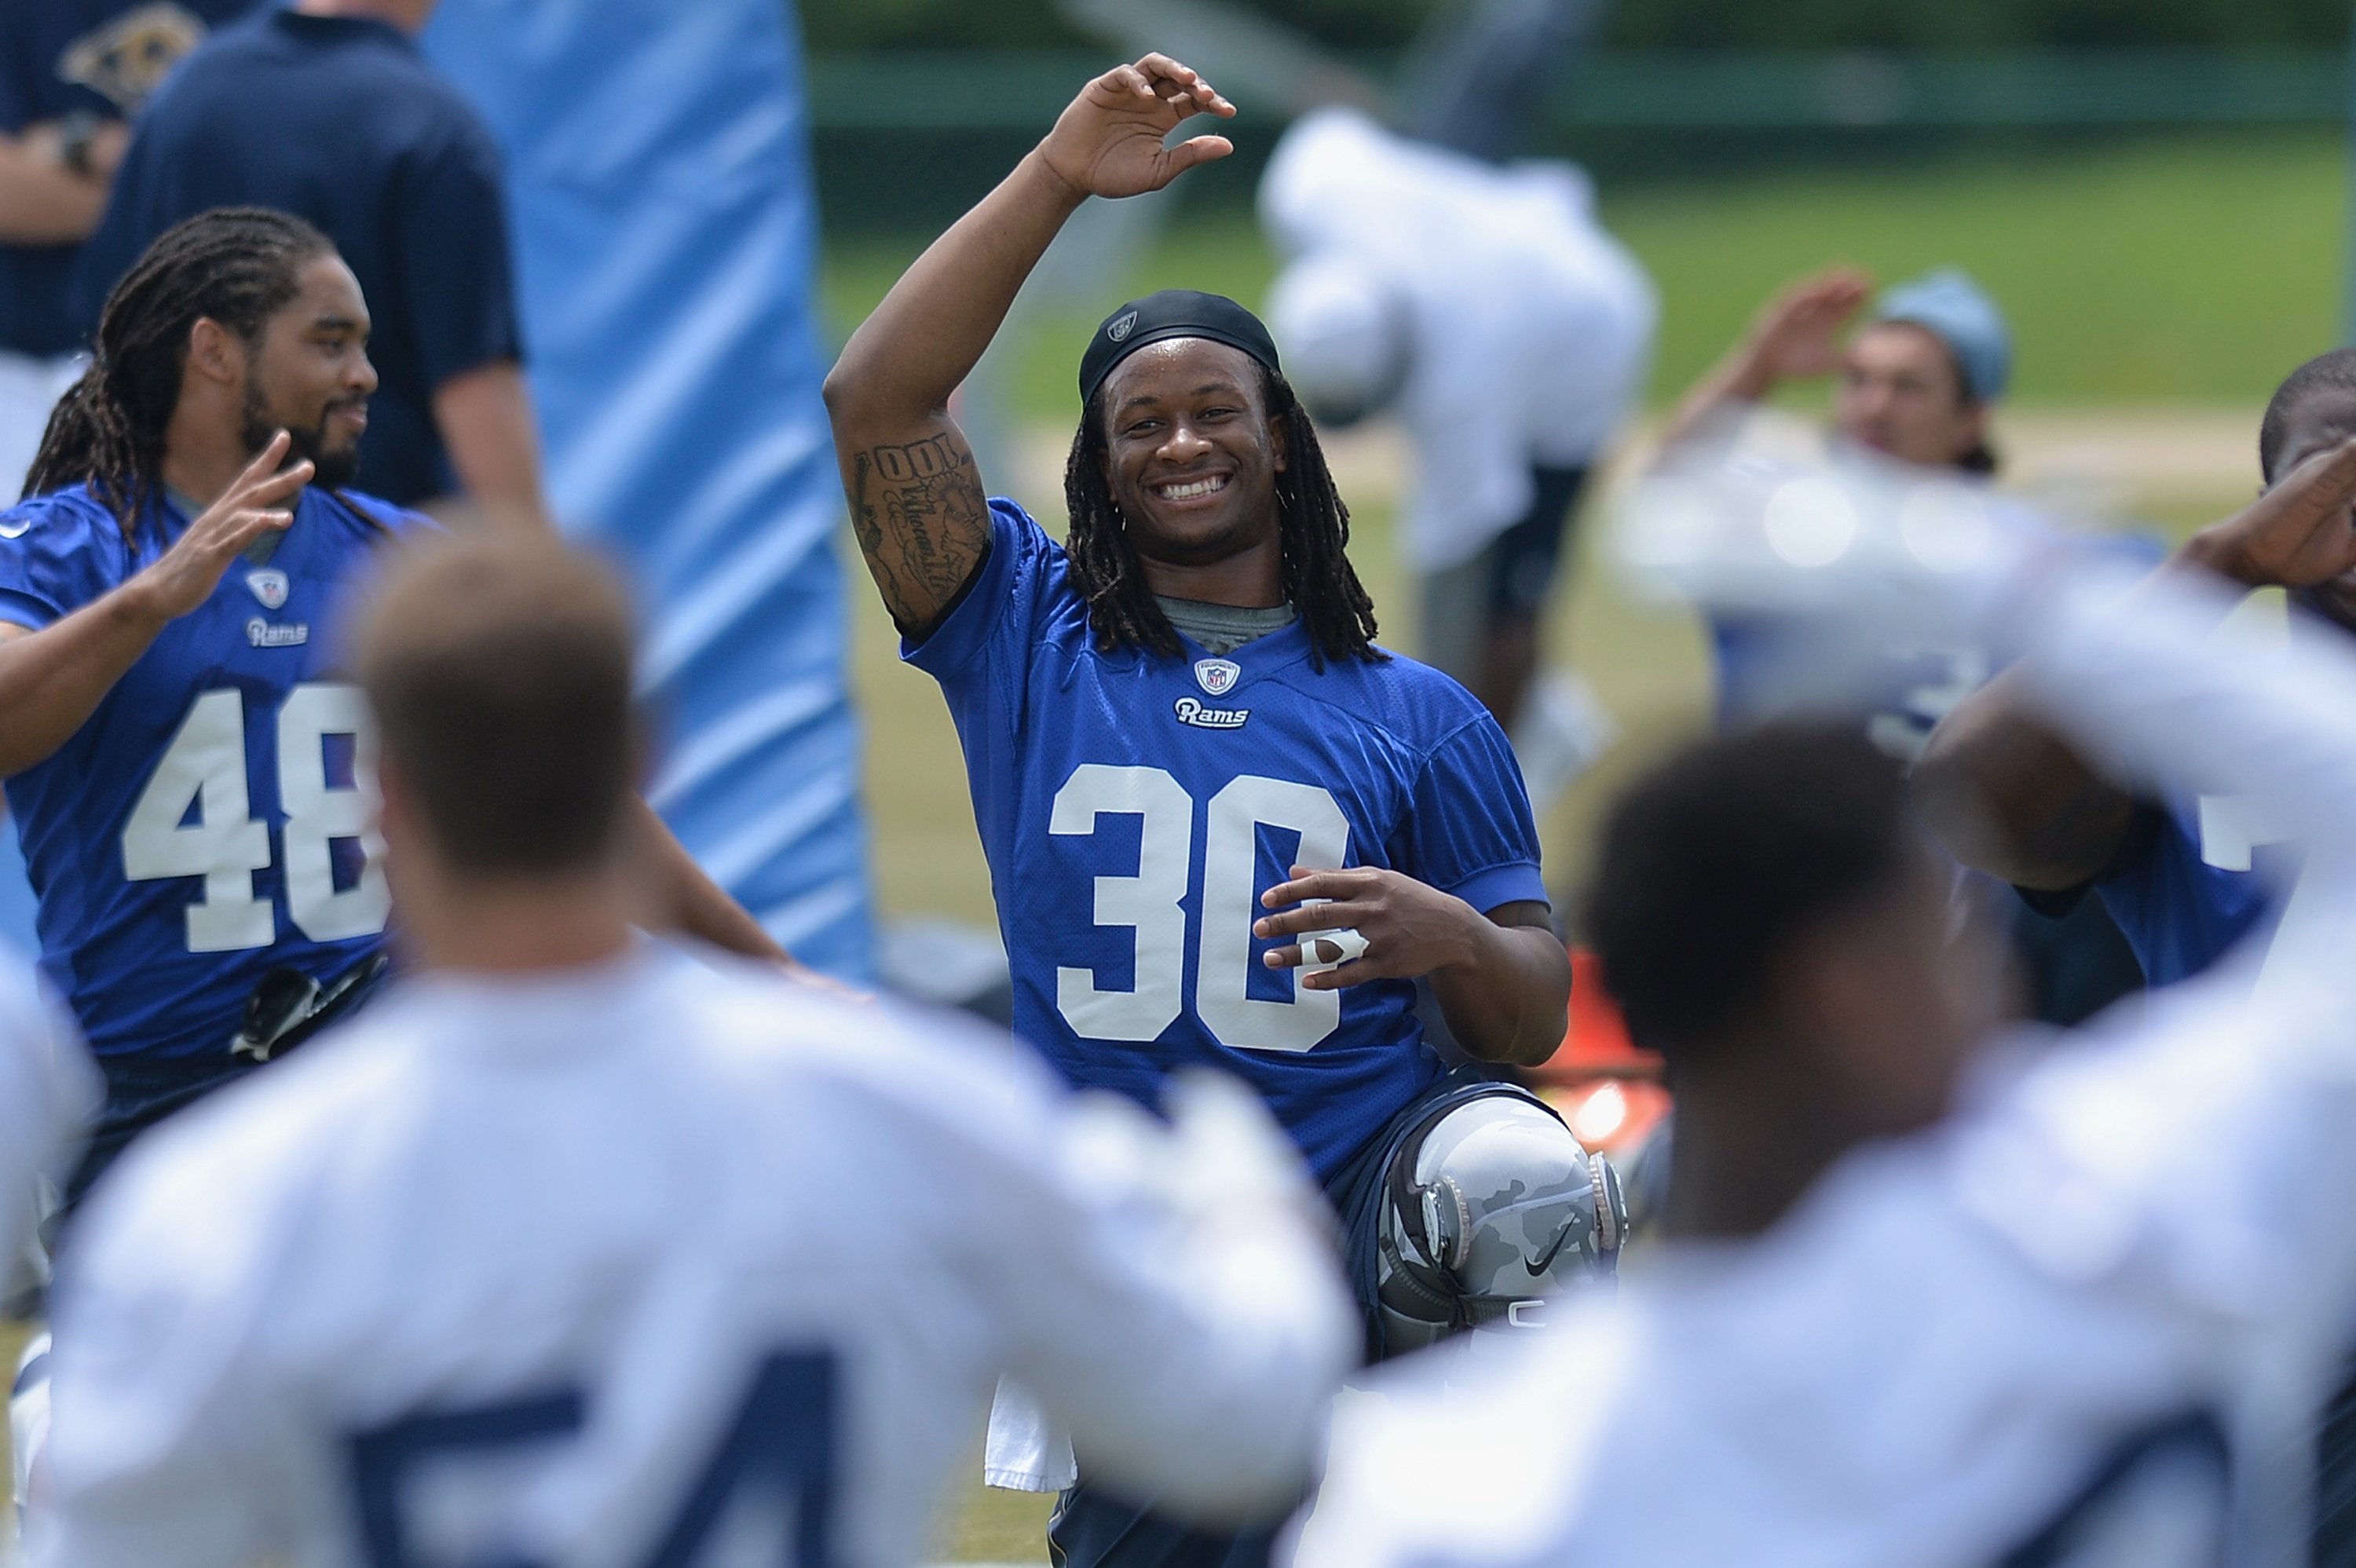 St. Louis Rams rookie running back Todd Gurley (30) stretches during an NFL football organized team activity, Thursday, June 11, 2015, in St. Louis. (AP Photo/Michael Thomas)